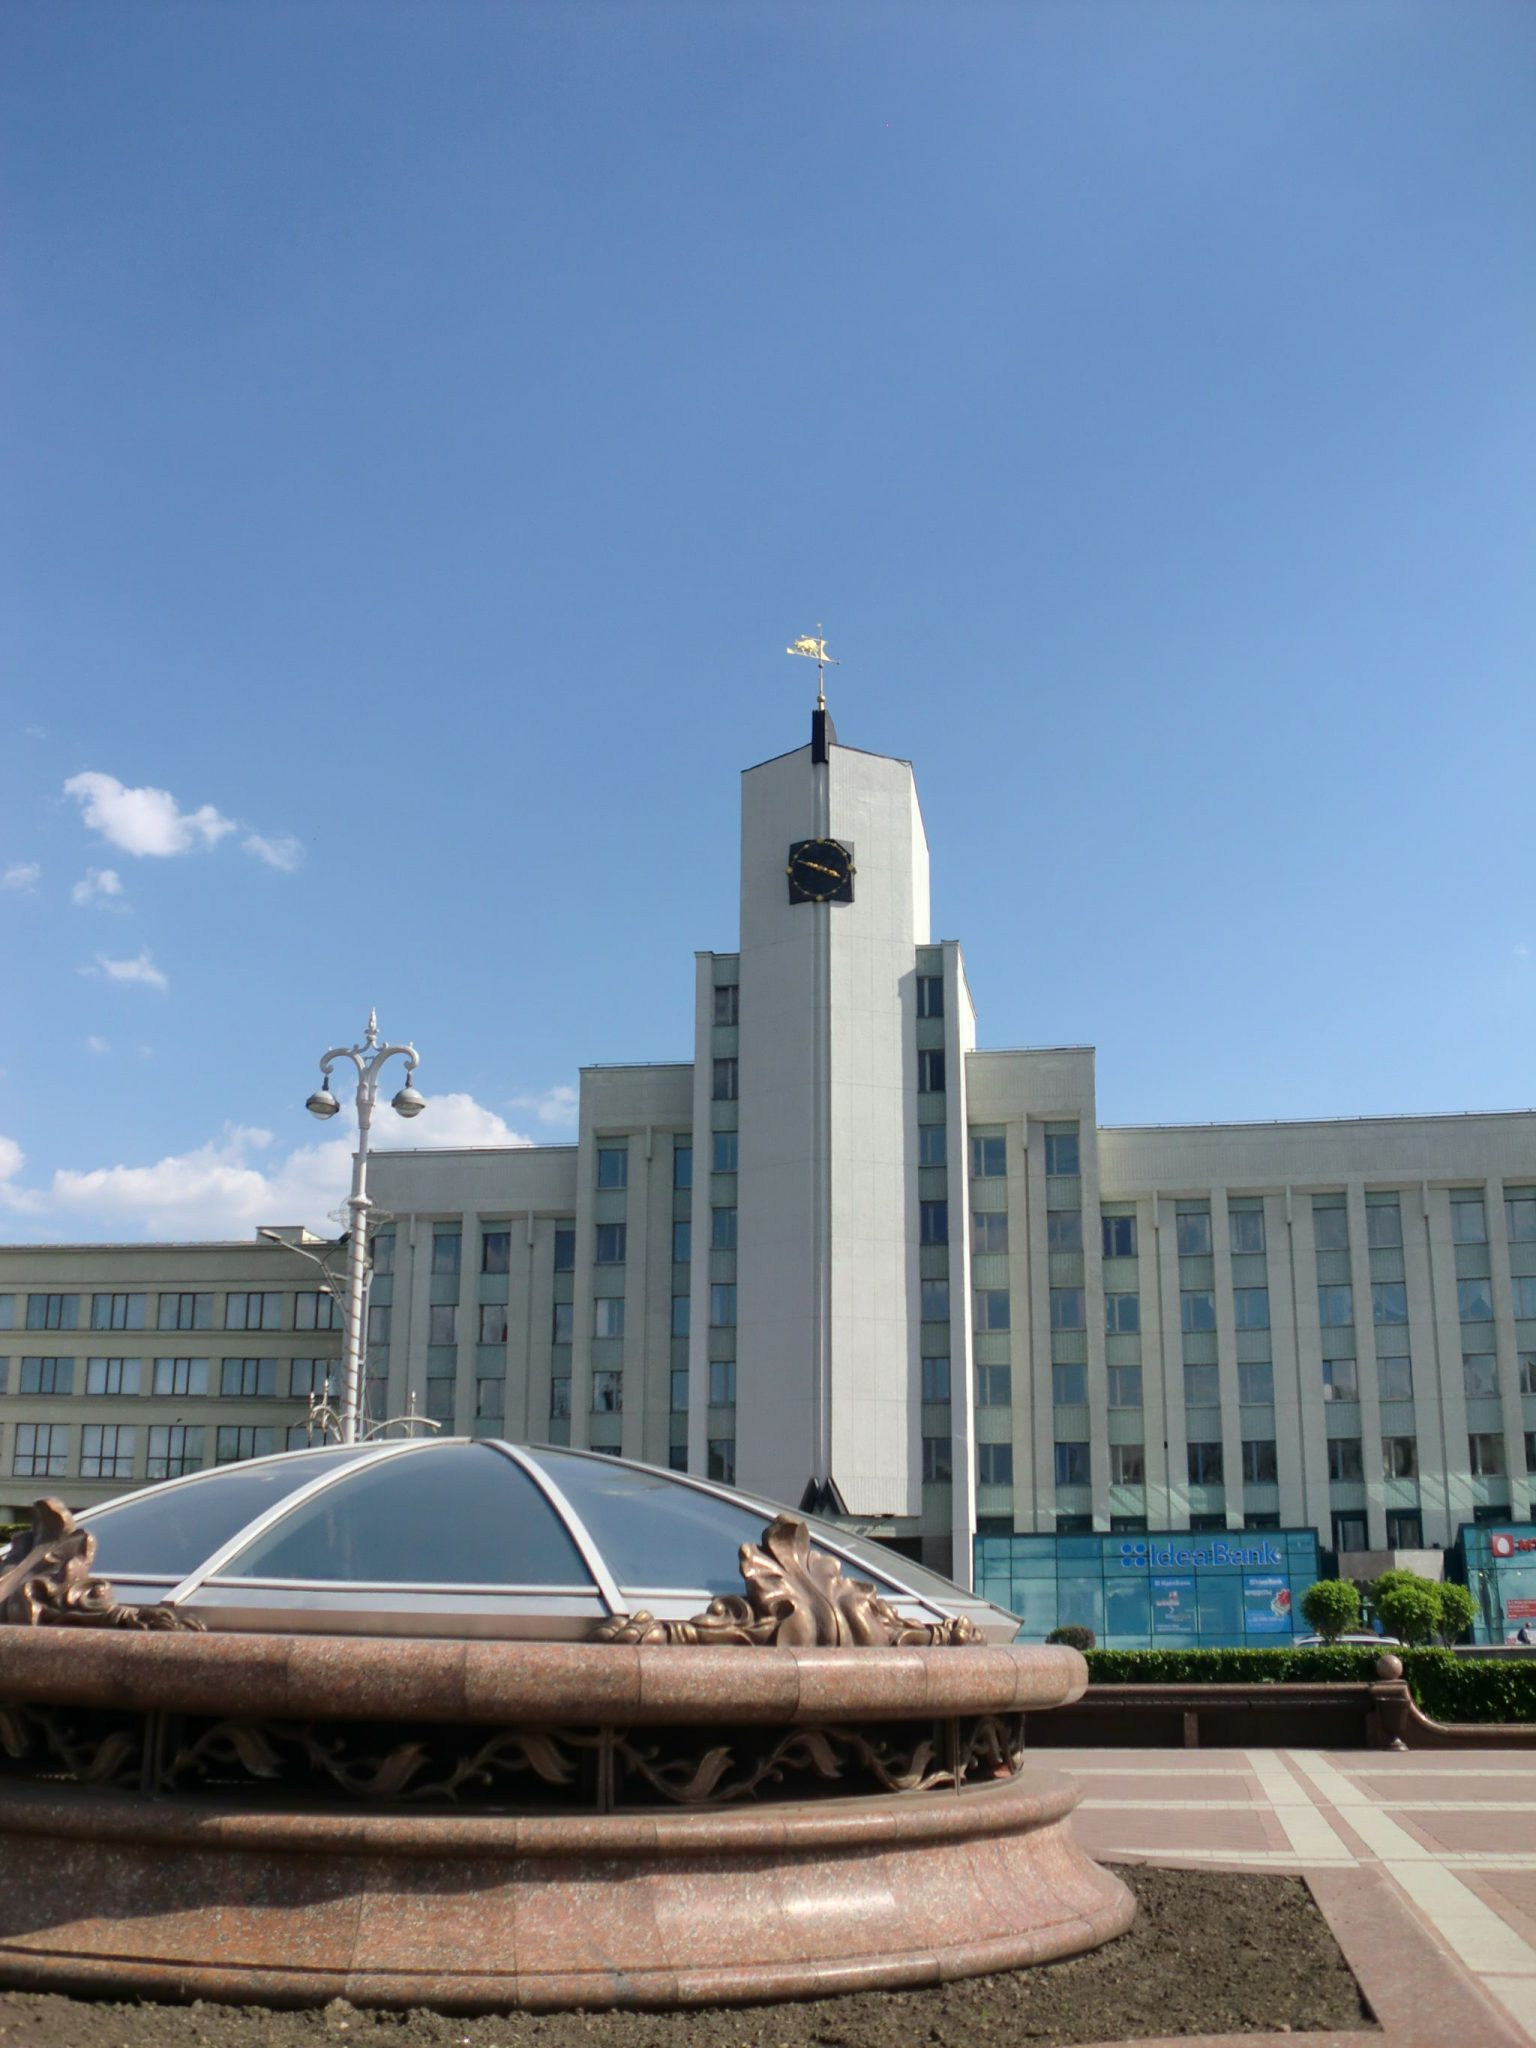 Minsk Russia 2 - Minsk, 1 amazing city you have to see